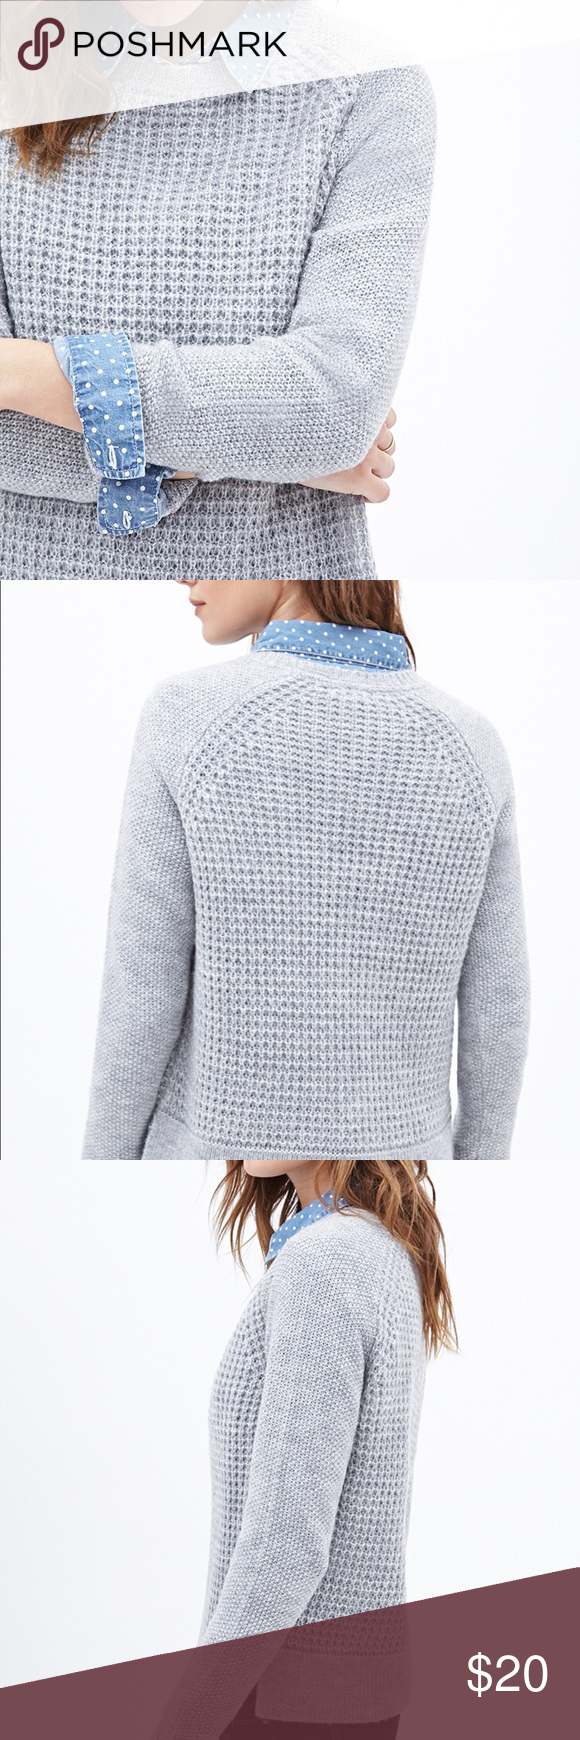 Forever 21 Women's Gray Waffle Knit Sweater